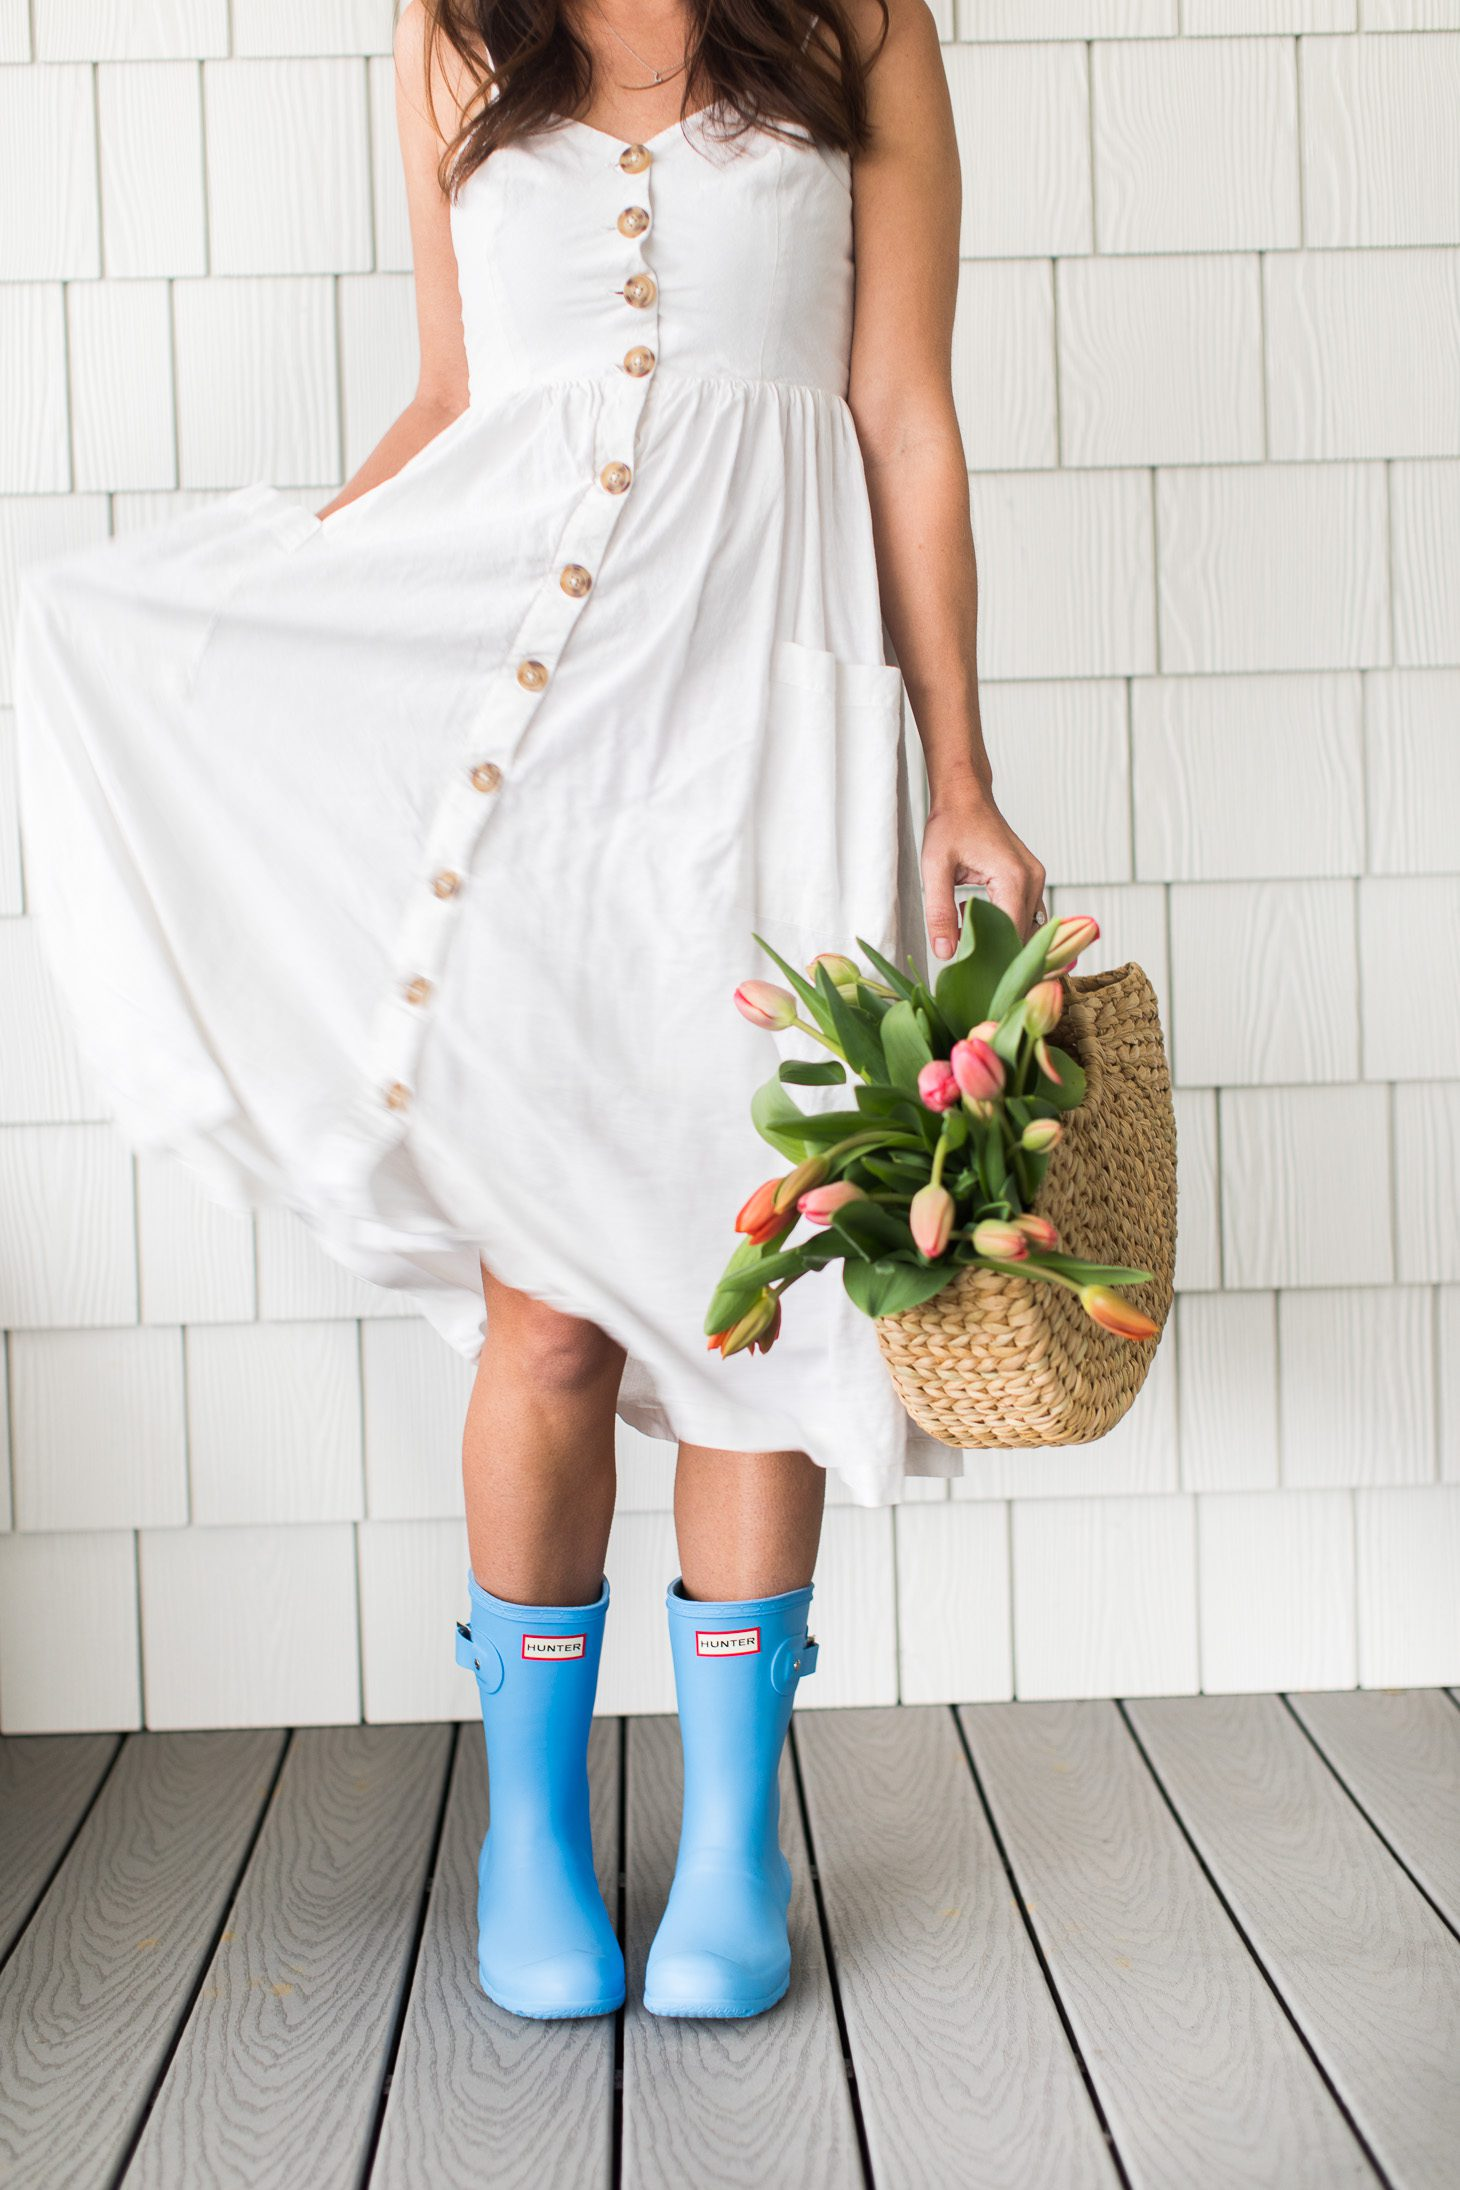 Jillian Harris Jump Into Spring in These Cute Shoes